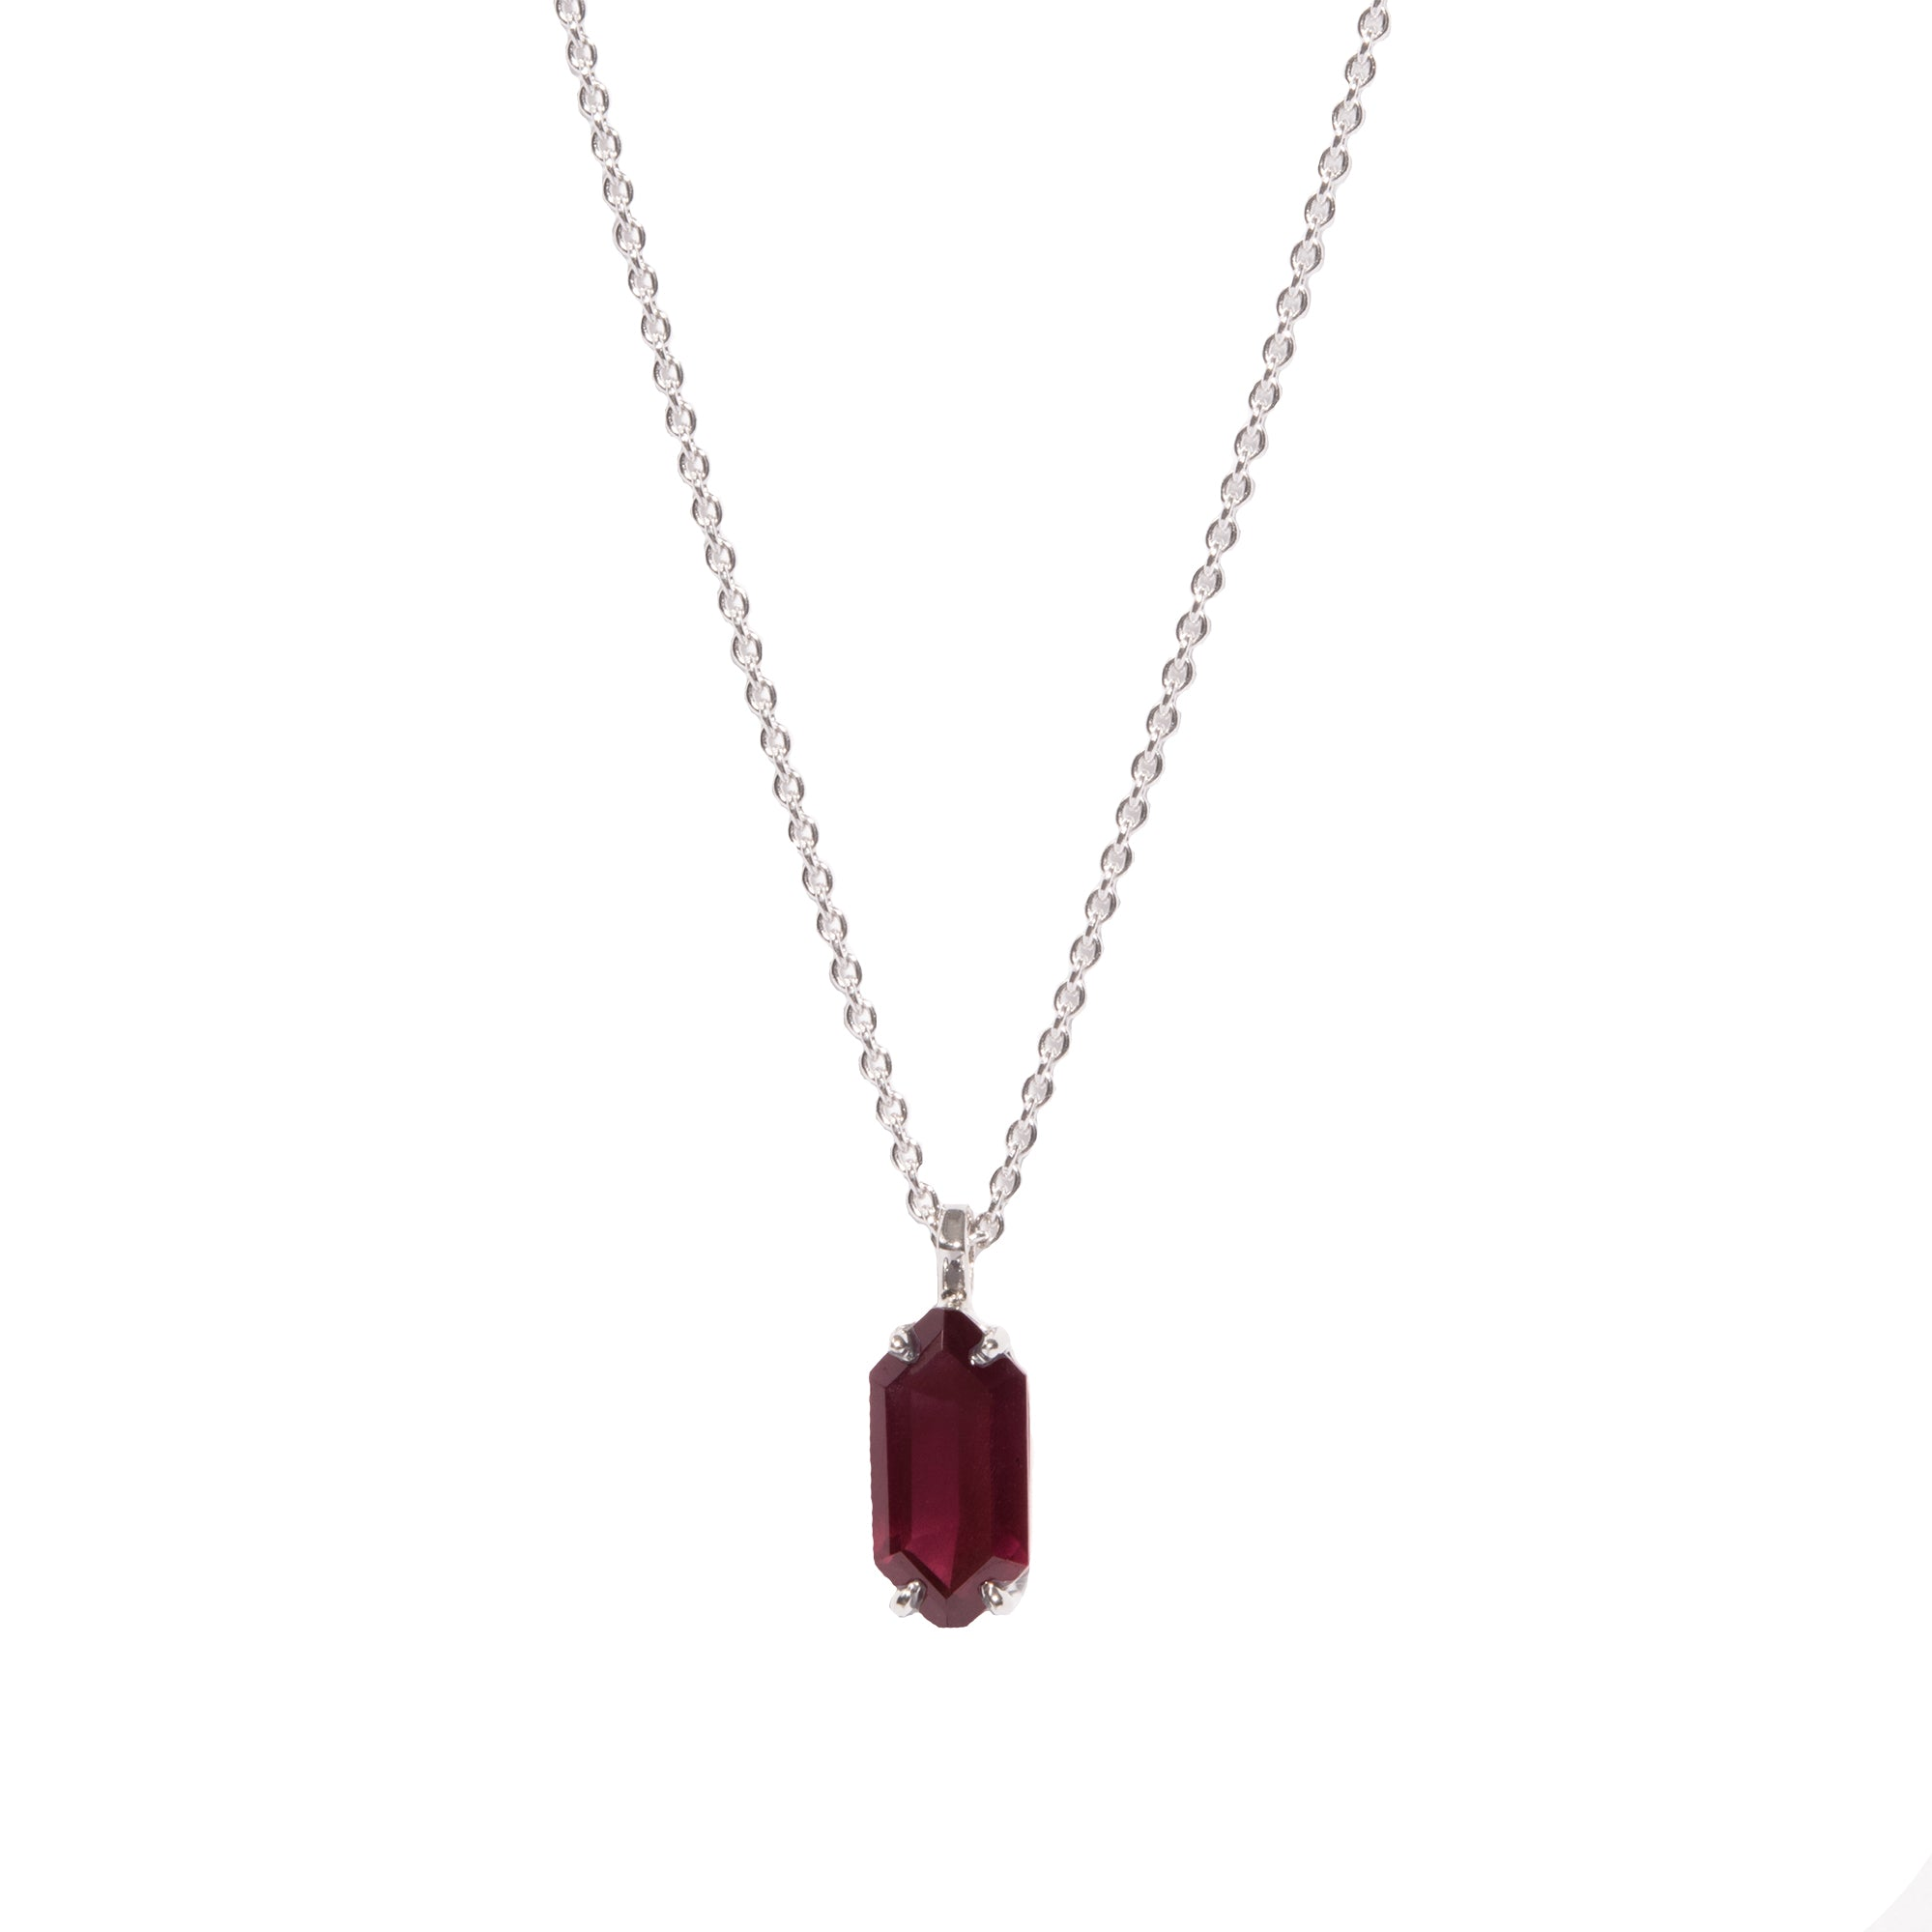 jewelry birthstone pendant january garnet chain with gemstone fine tiaara rhodolite necklace tictail cable silver